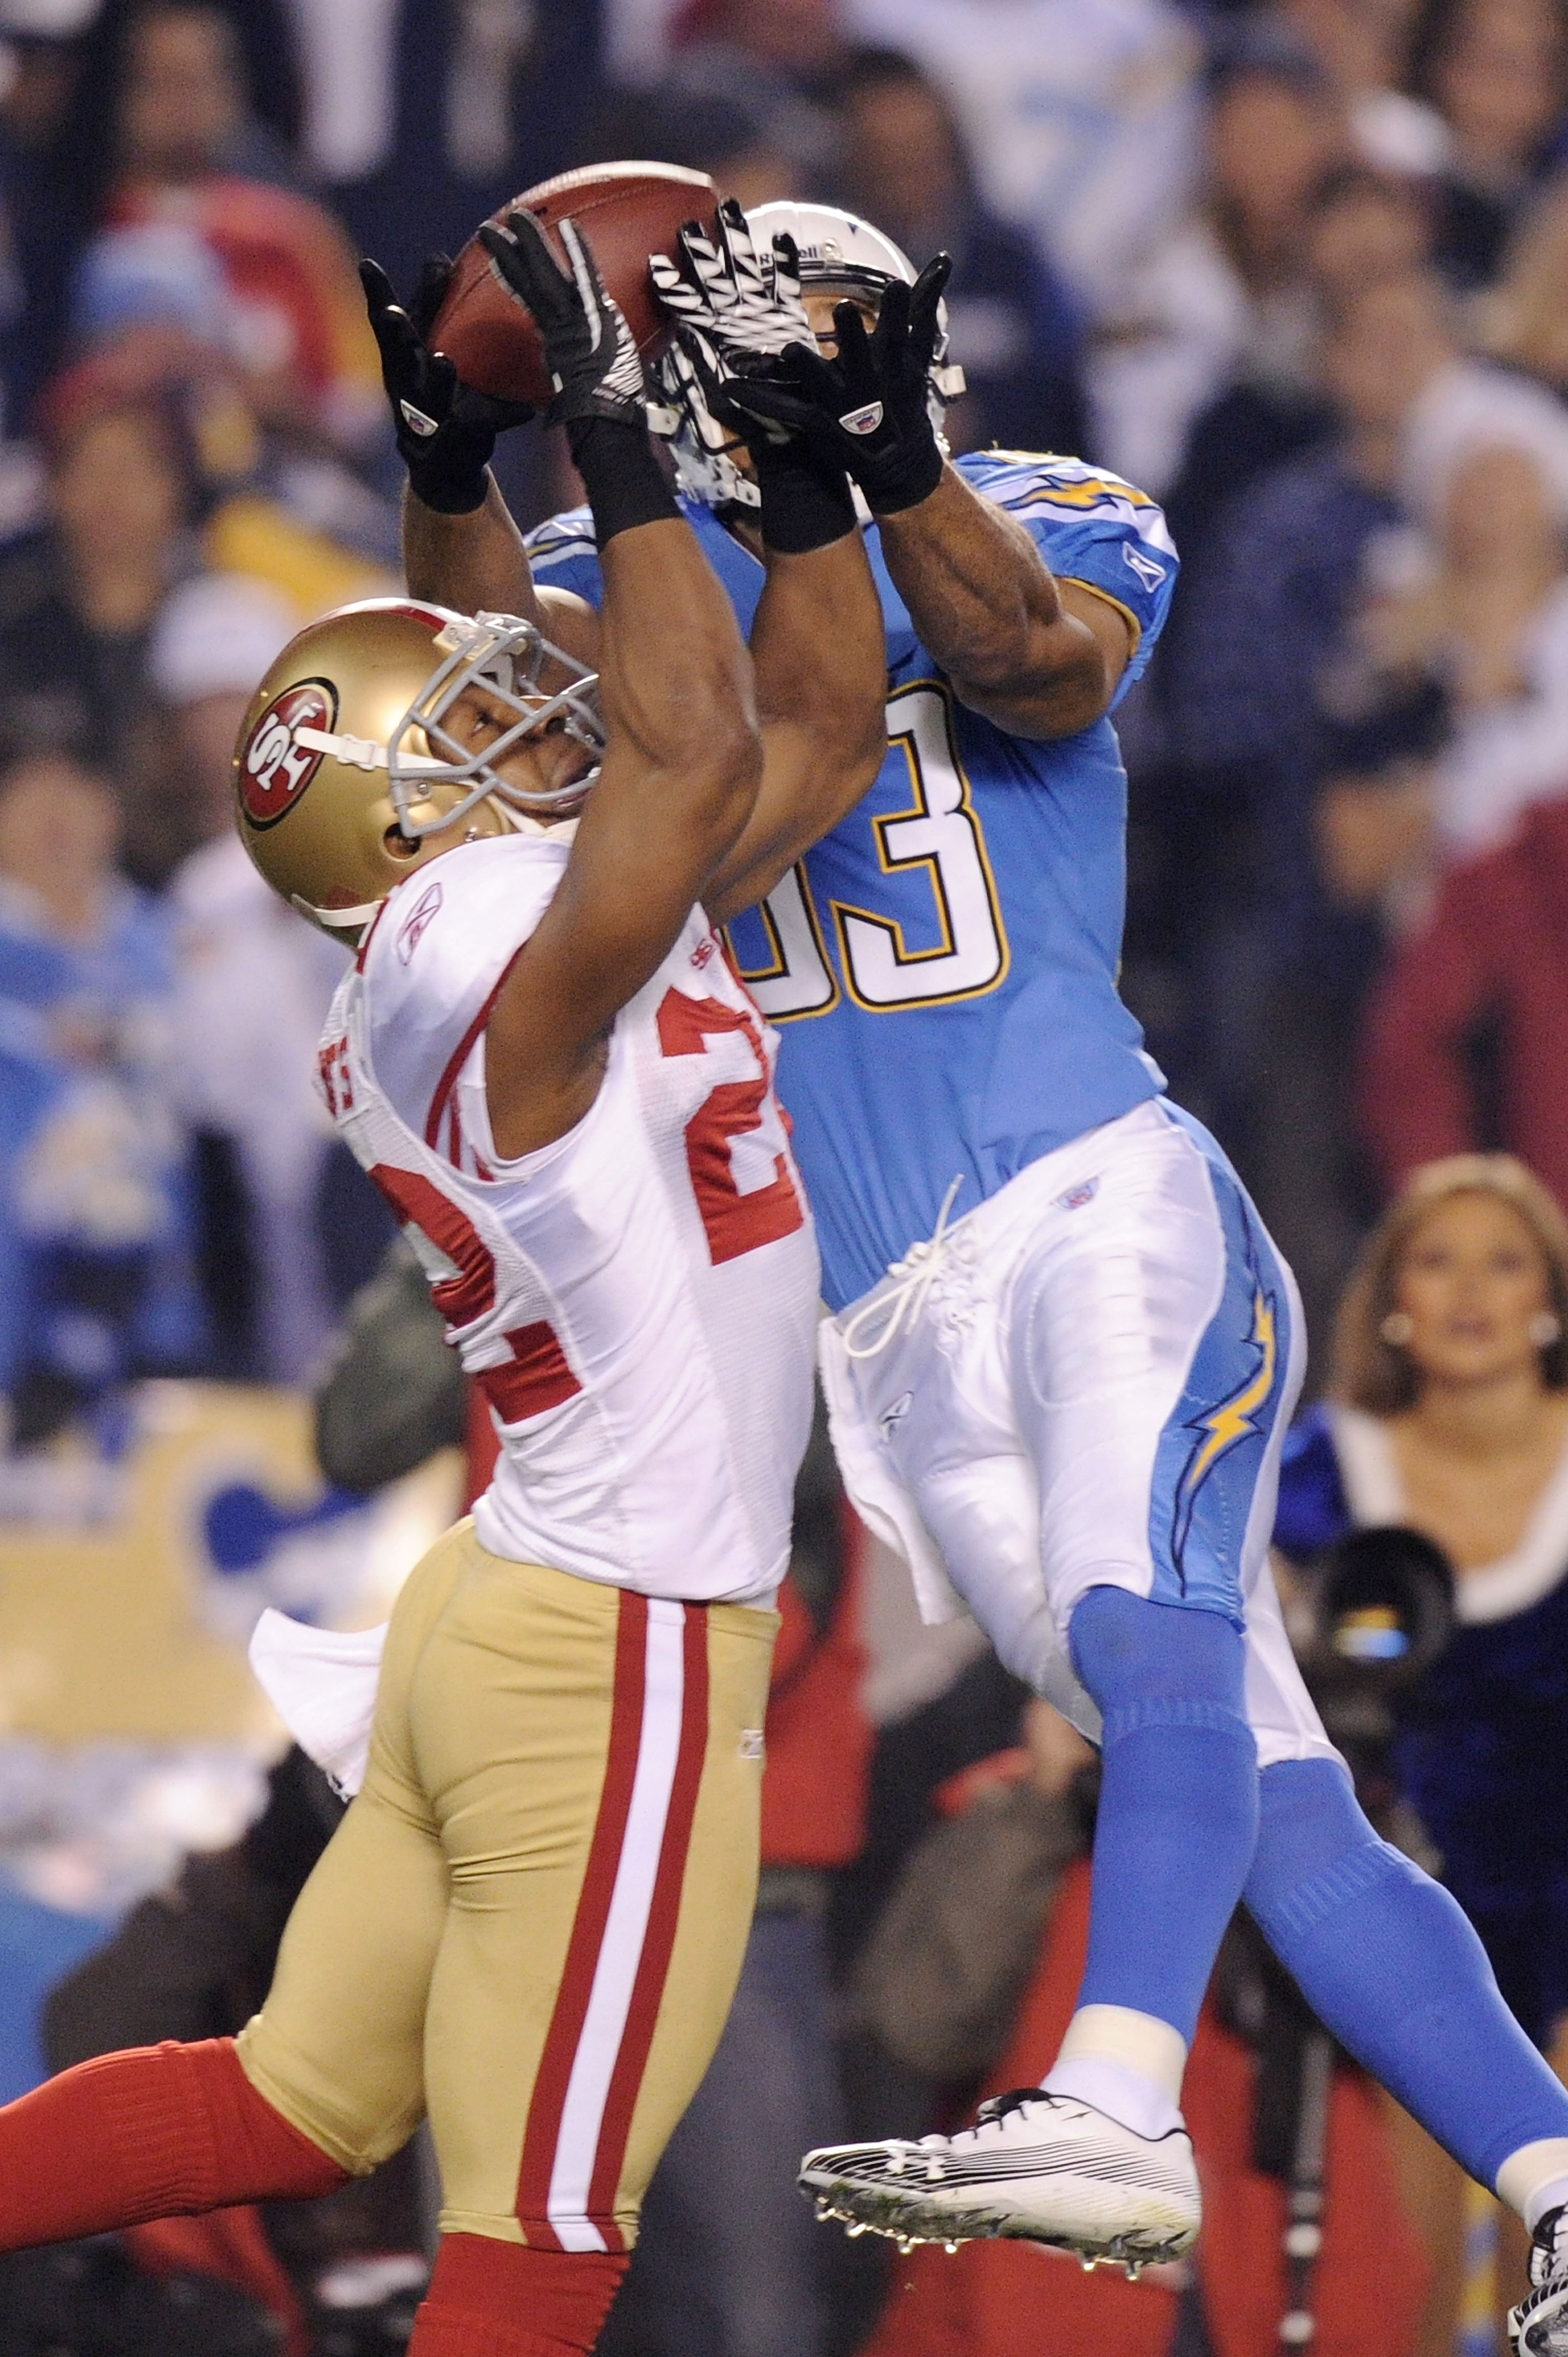 SAN DIEGO, CA - DECEMBER 16:  Wide receiver Vincent Jackson #83 of the San Diego Chargers makes a 58-yard touchdown catch in the first quarter as Nate Clements #22 of the San Francisco 49ers defends at Qualcomm Stadium on December 16, 2010 in San Diego, C